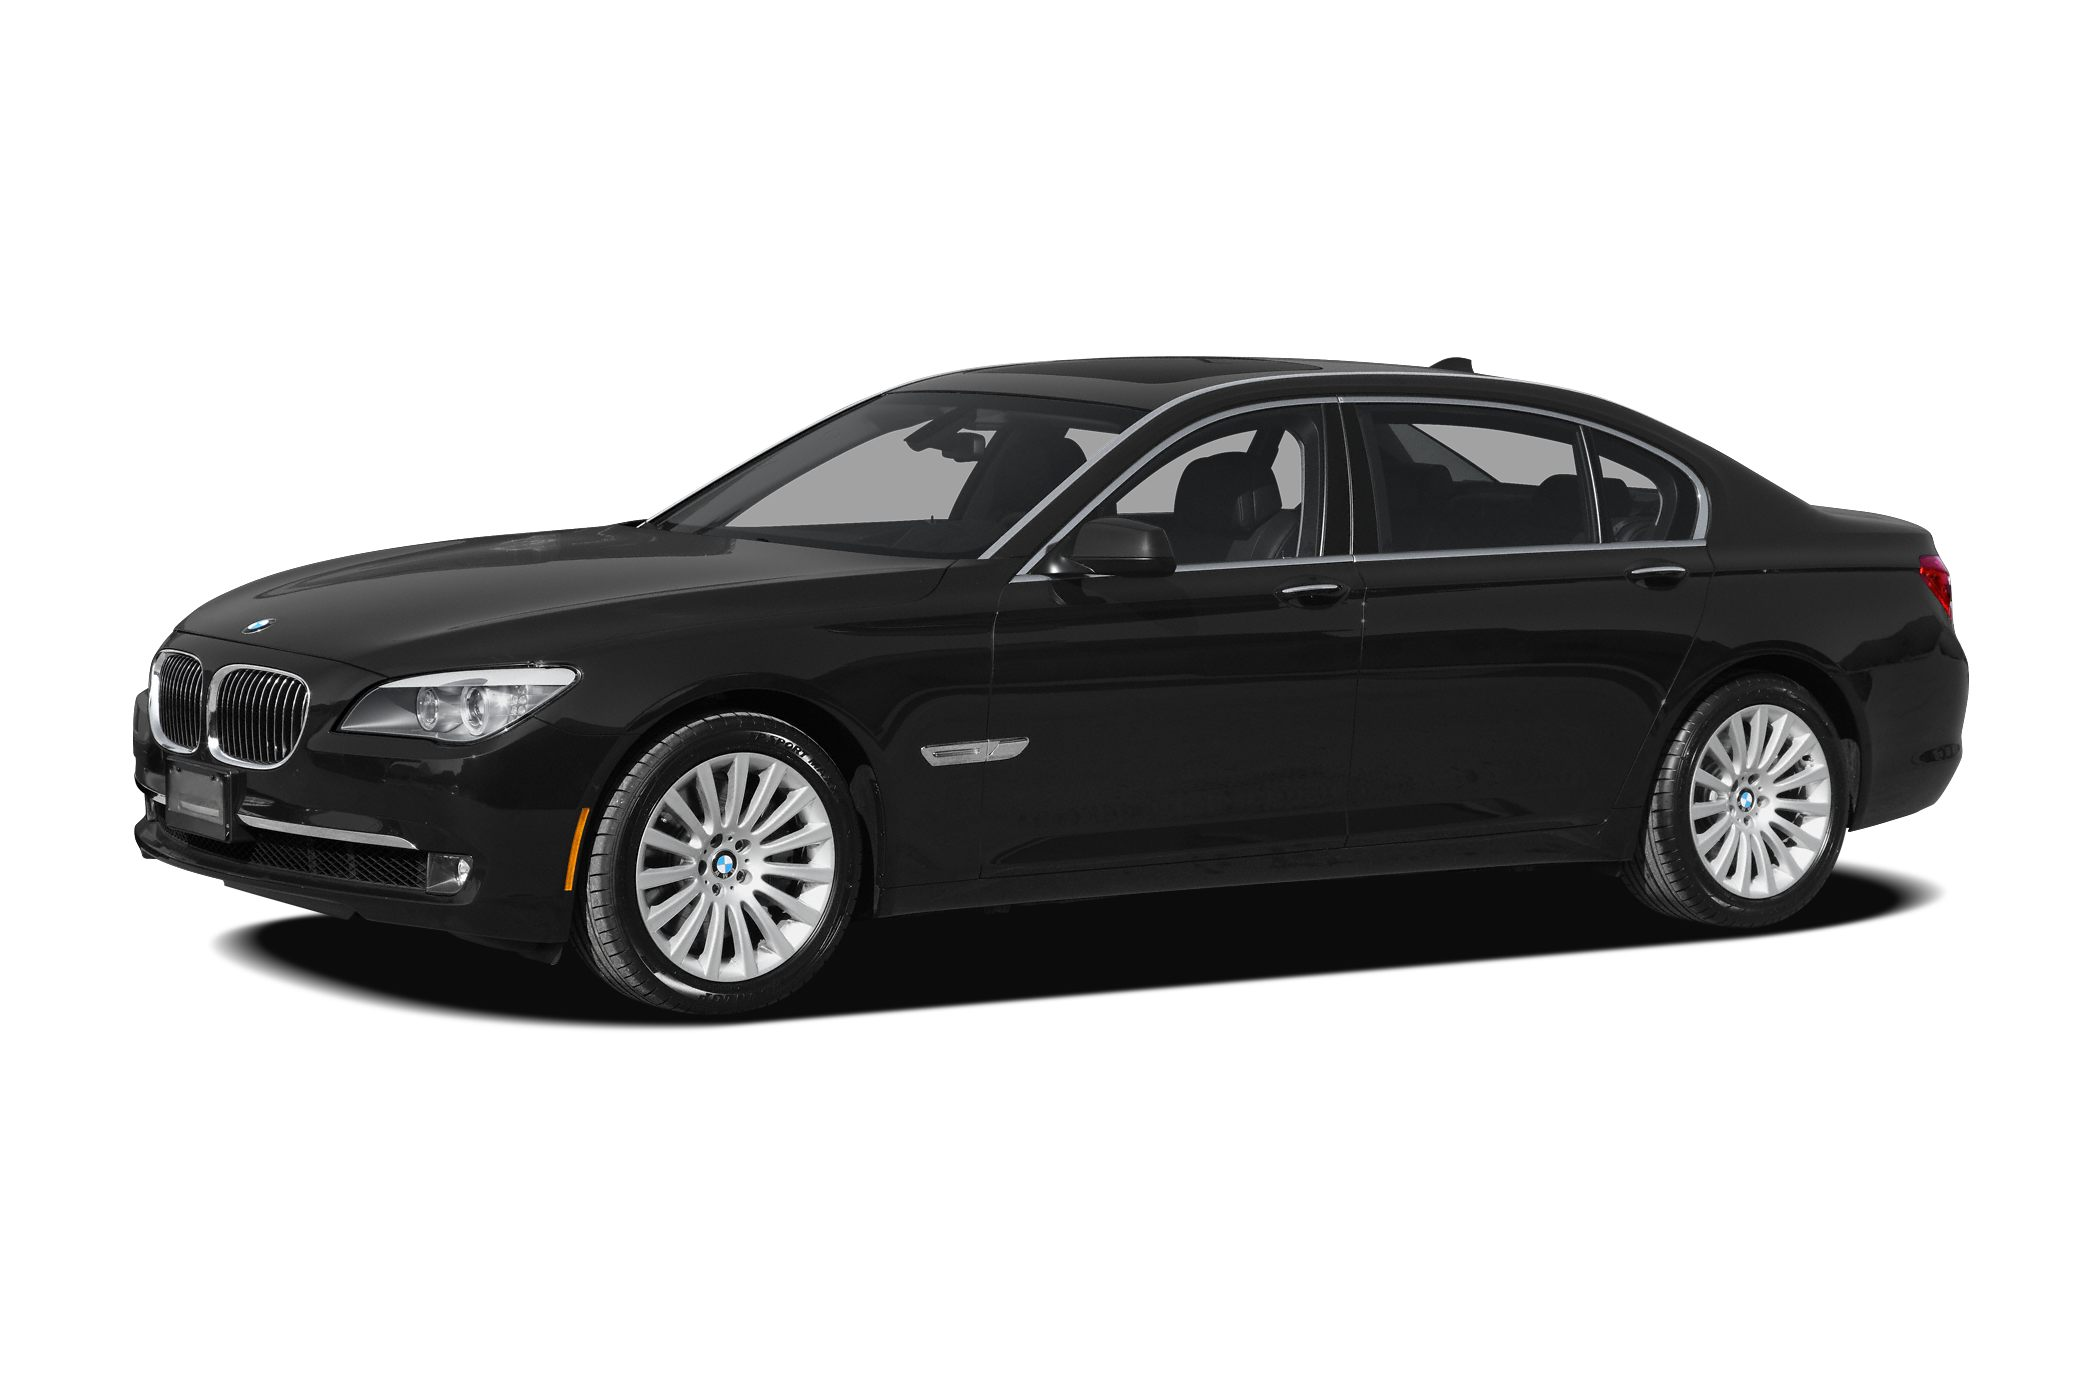 2010 BMW 7 Series 750Li xDrive Visit Best Auto Group online at bronxbestautocom to see more pictu